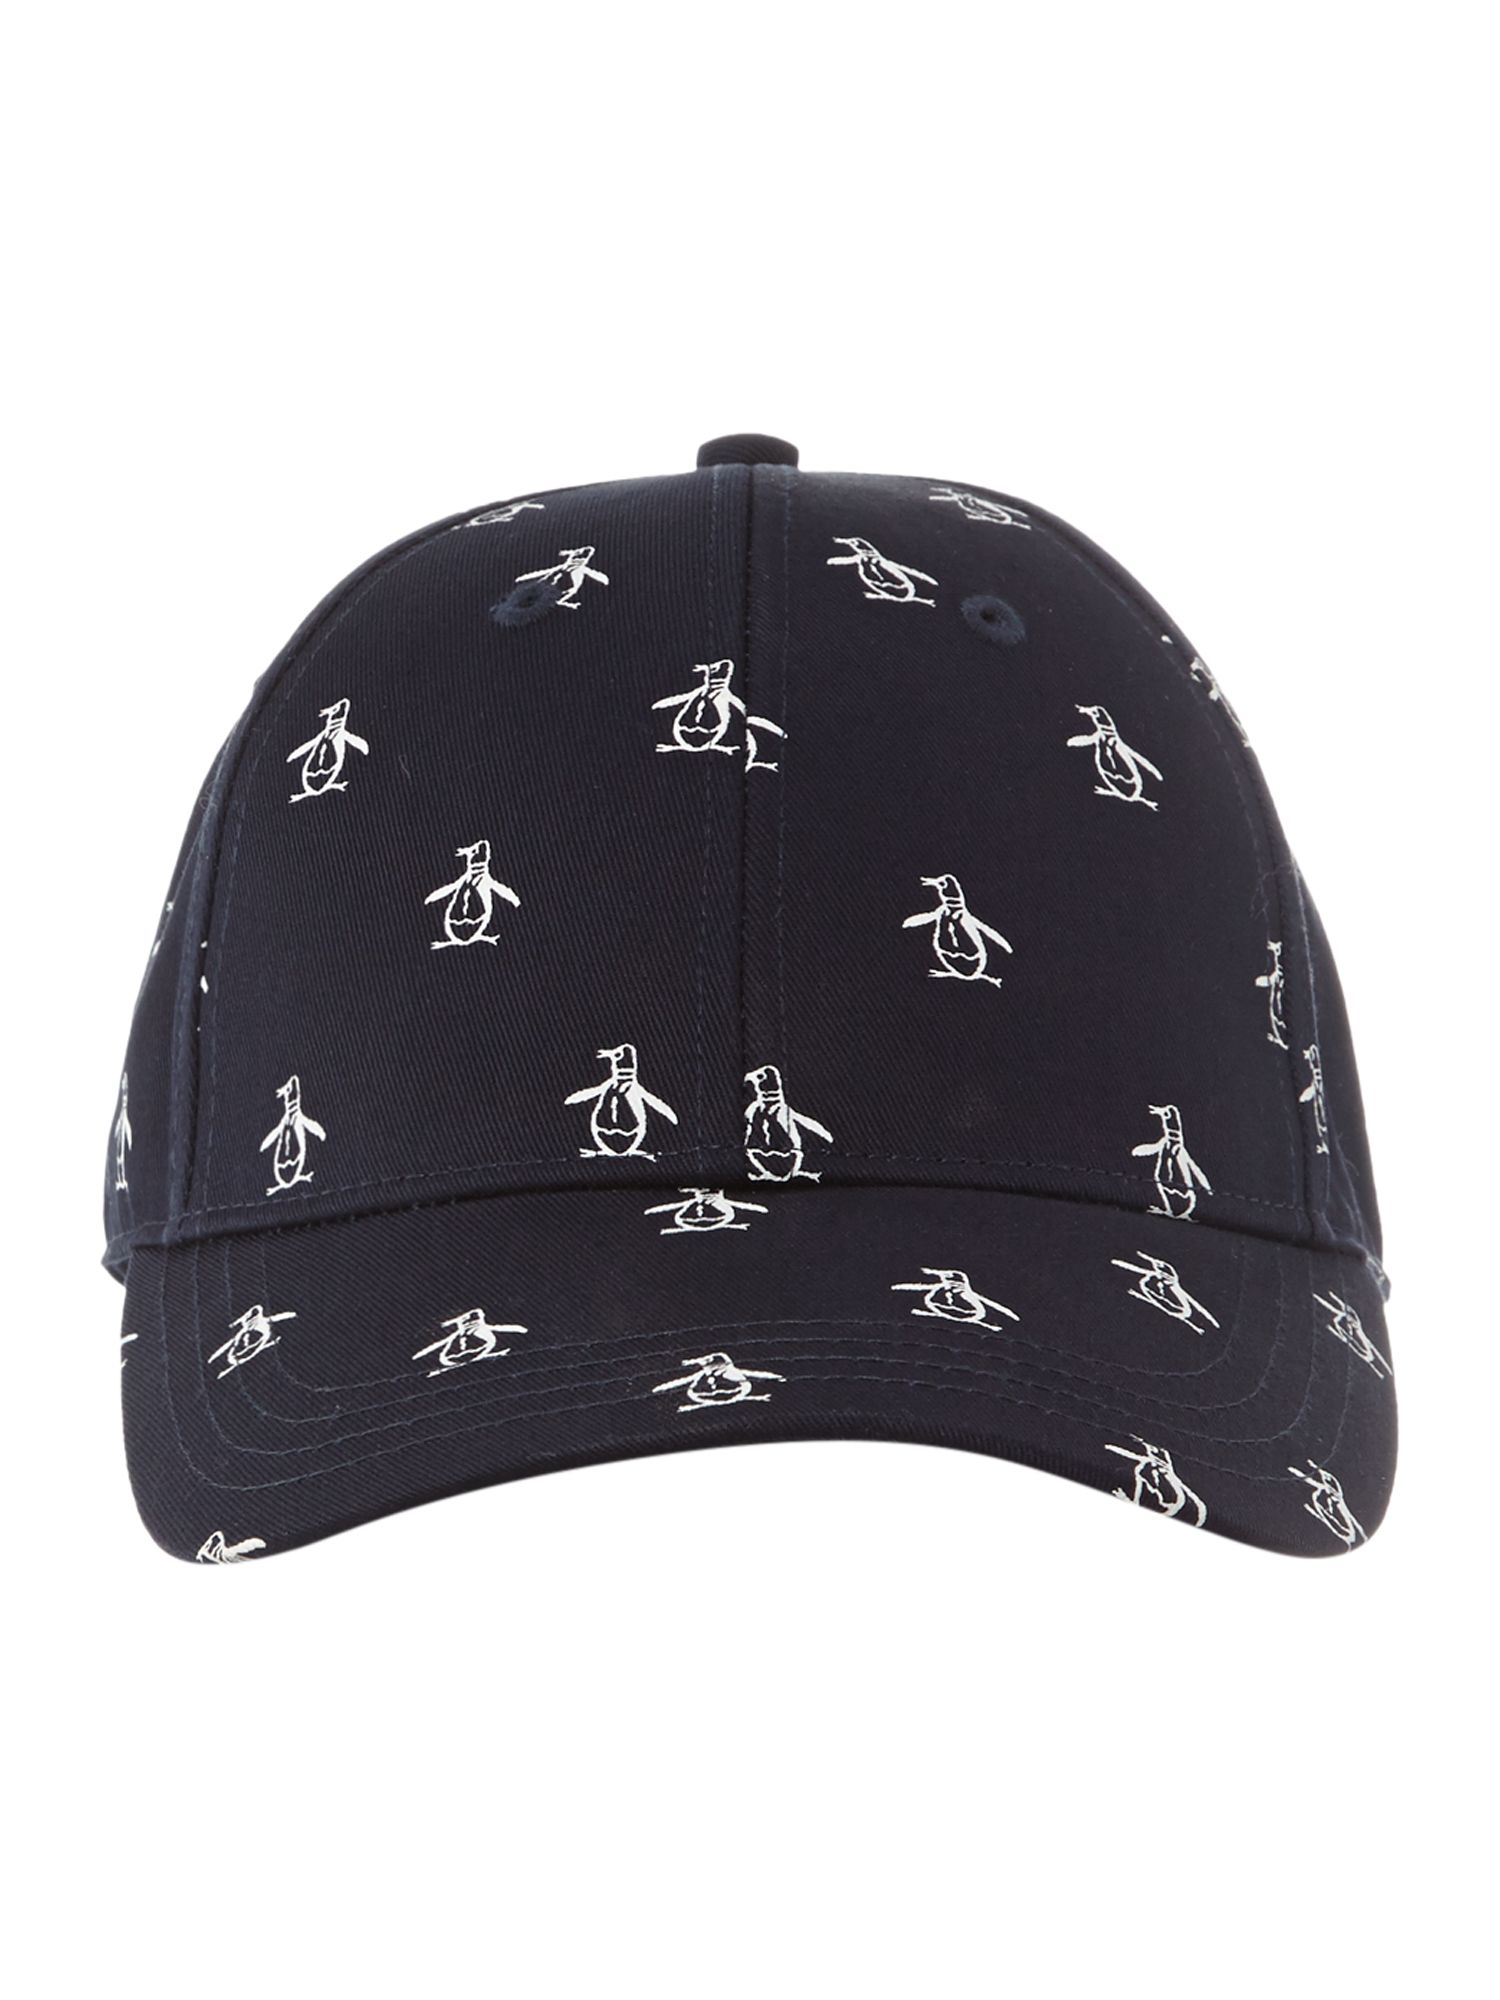 Adjustable all over logo baseball cap